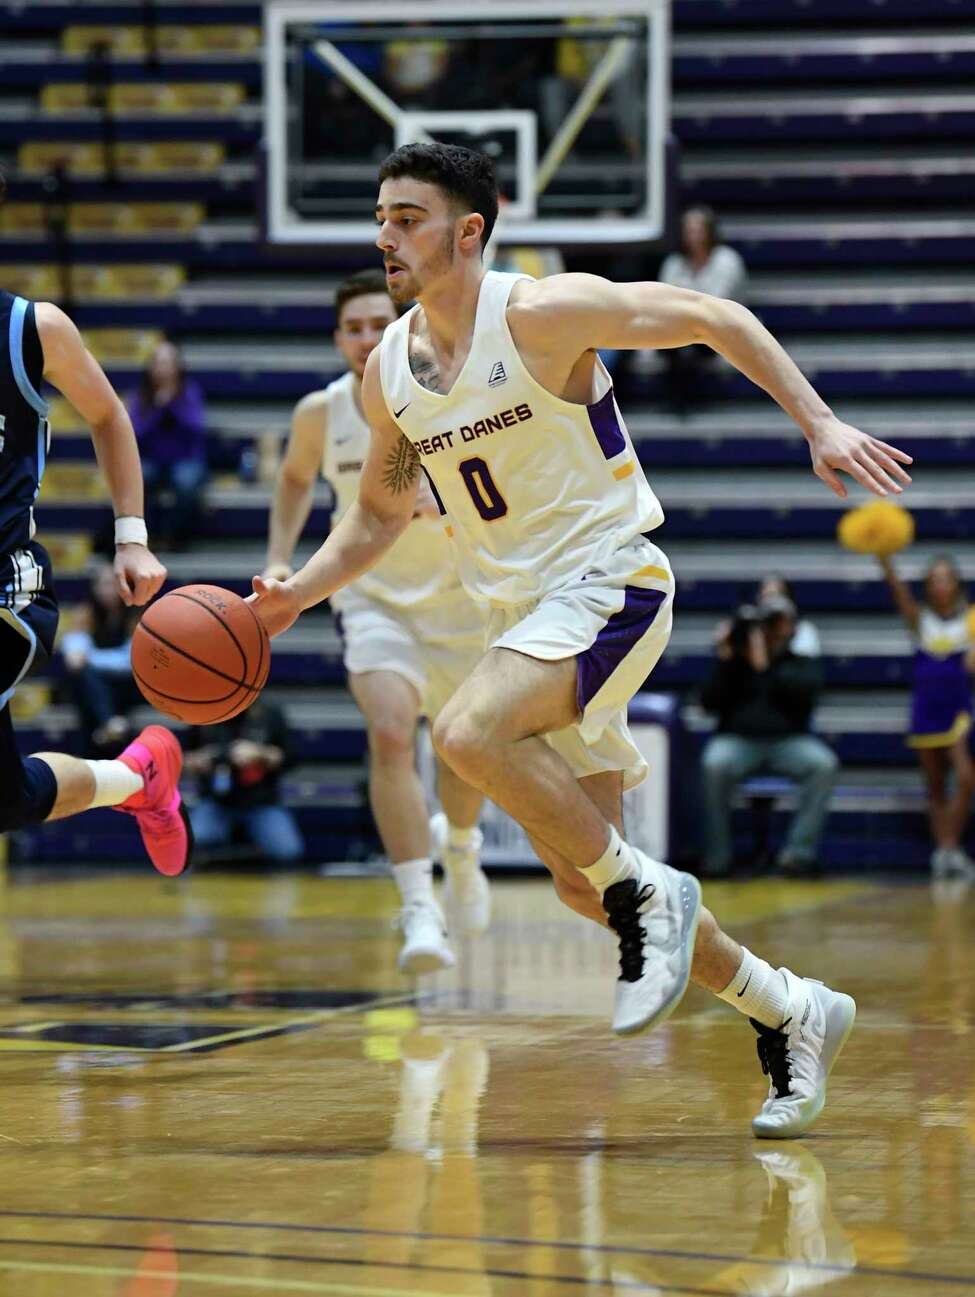 University at Albany guard Antonio Rizzuto (0) moves the ball against Maine during the first half of an NCAA basketball game Saturday Jan. 11, 2020, in Albany, N.Y.